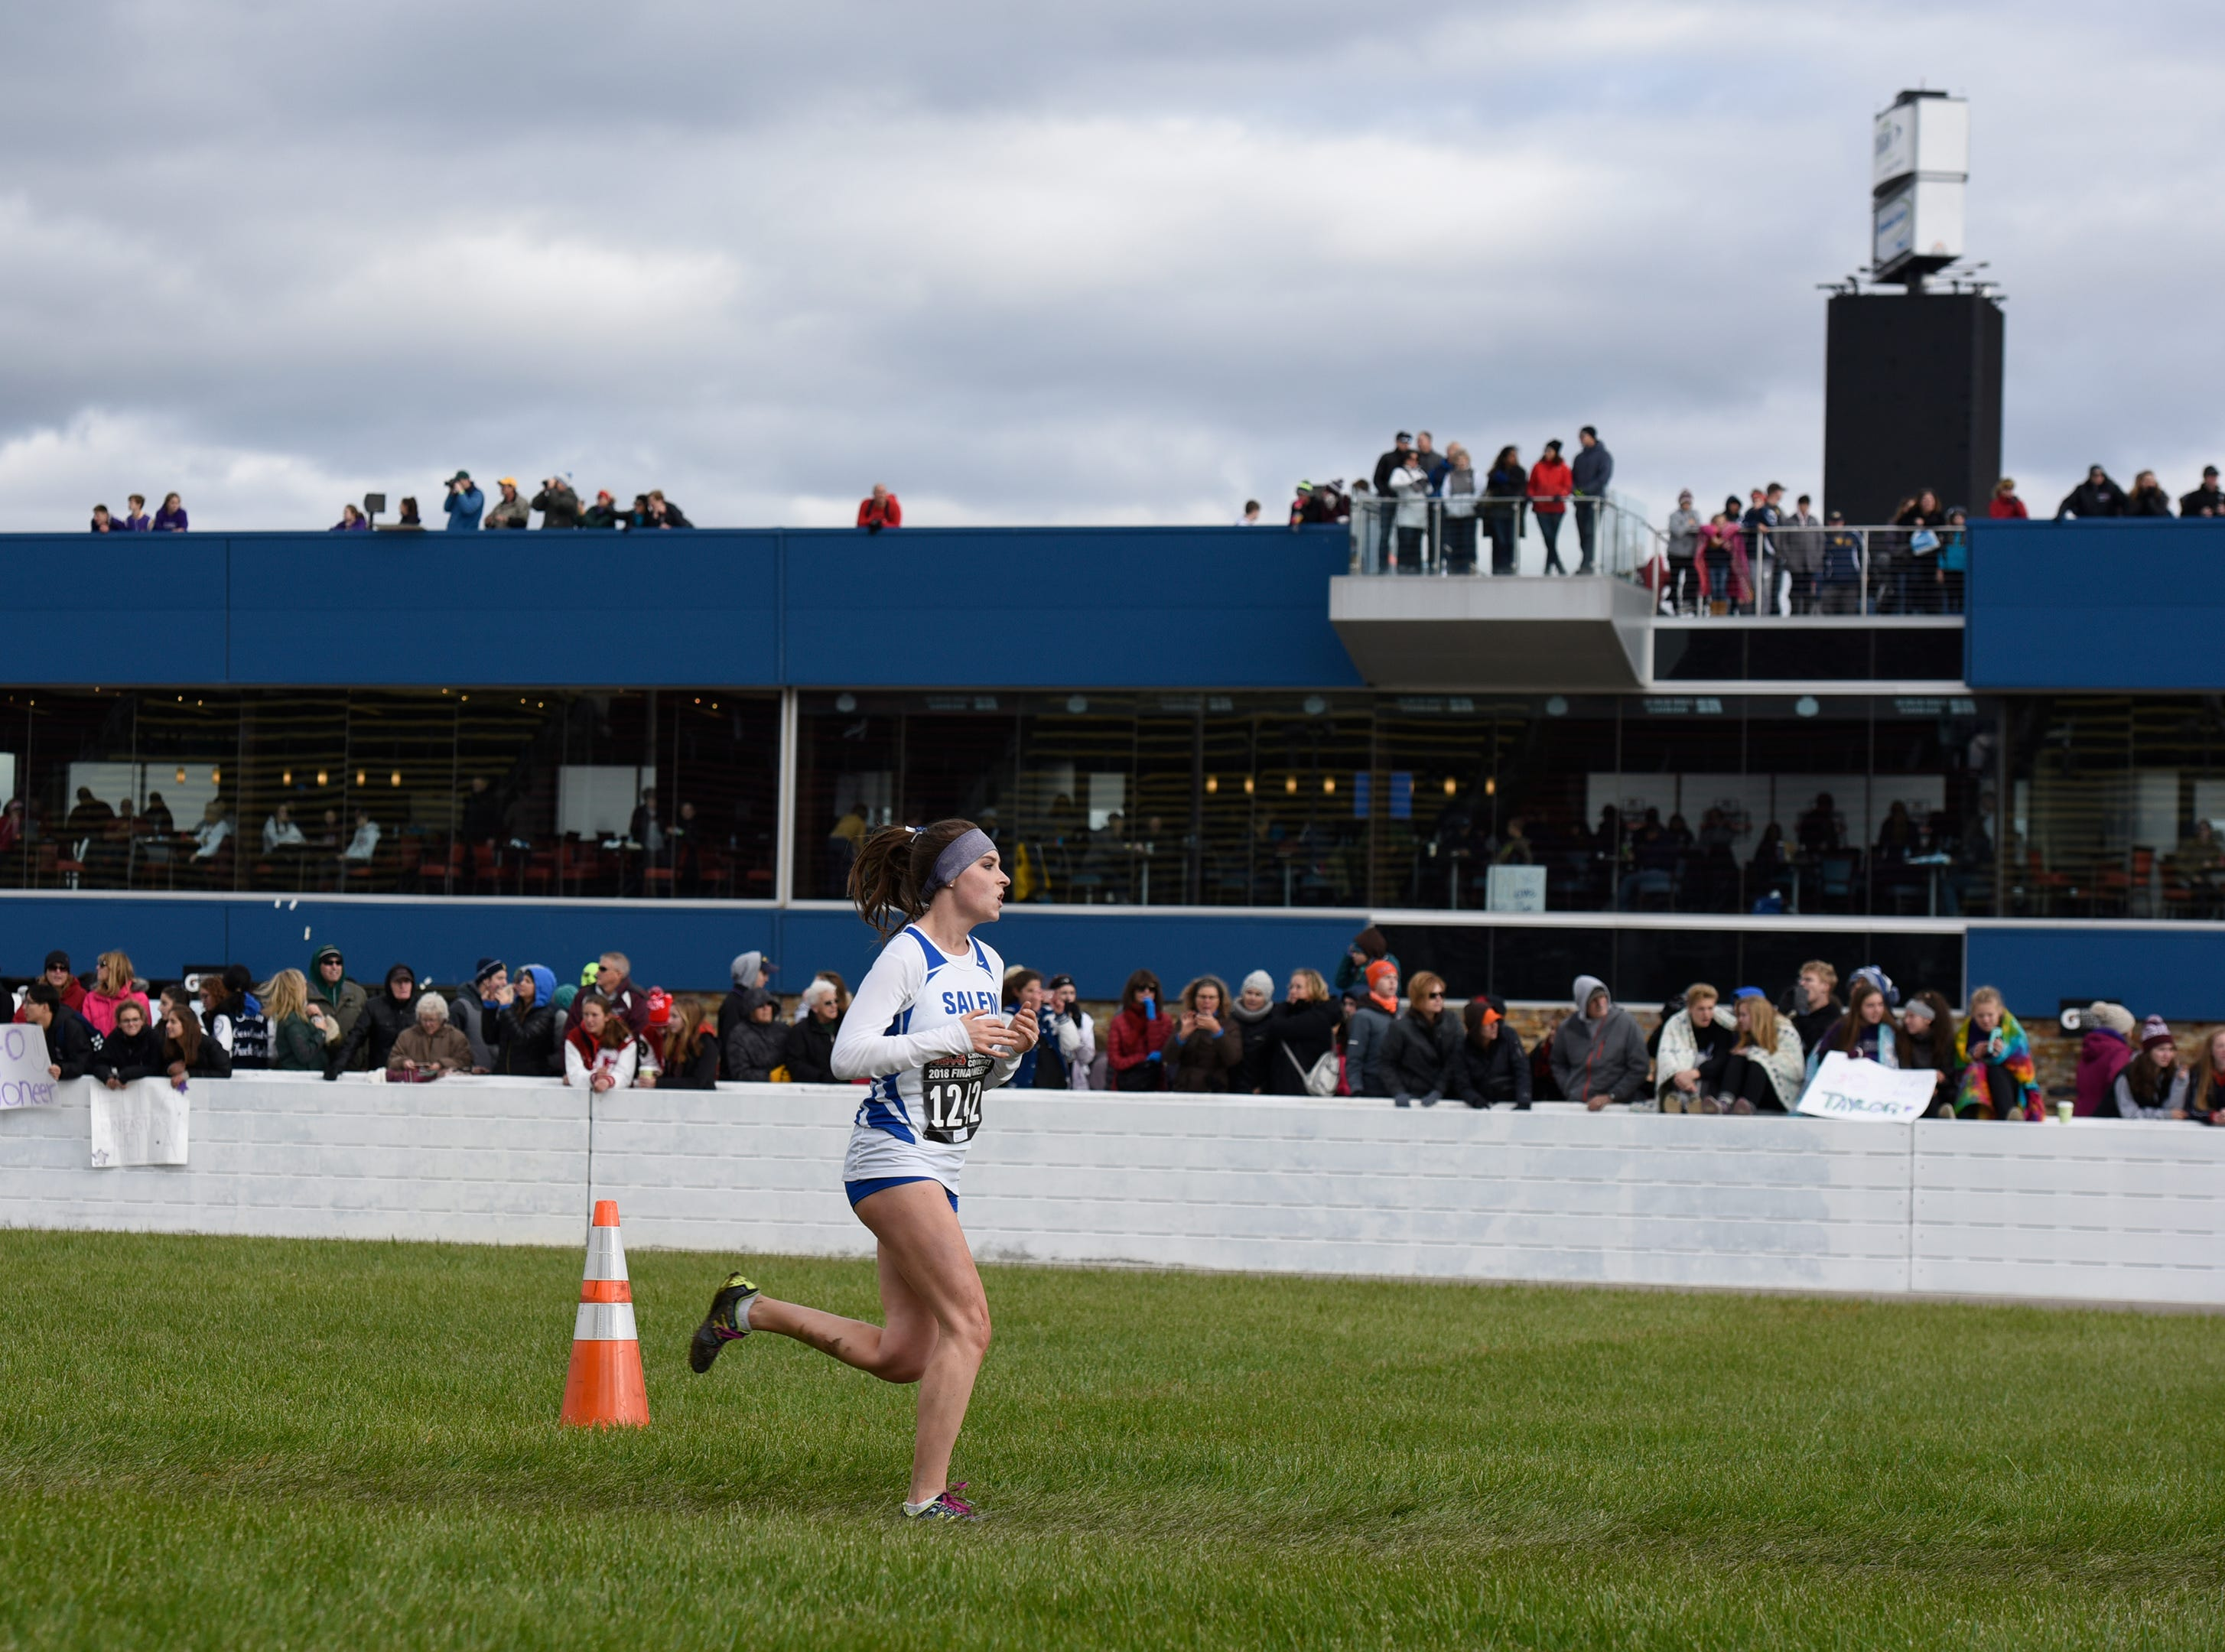 Salem's Gabrielle Mancini runs to the finish of the Division 1 2018 cross country finals at Michigan International Speedway.